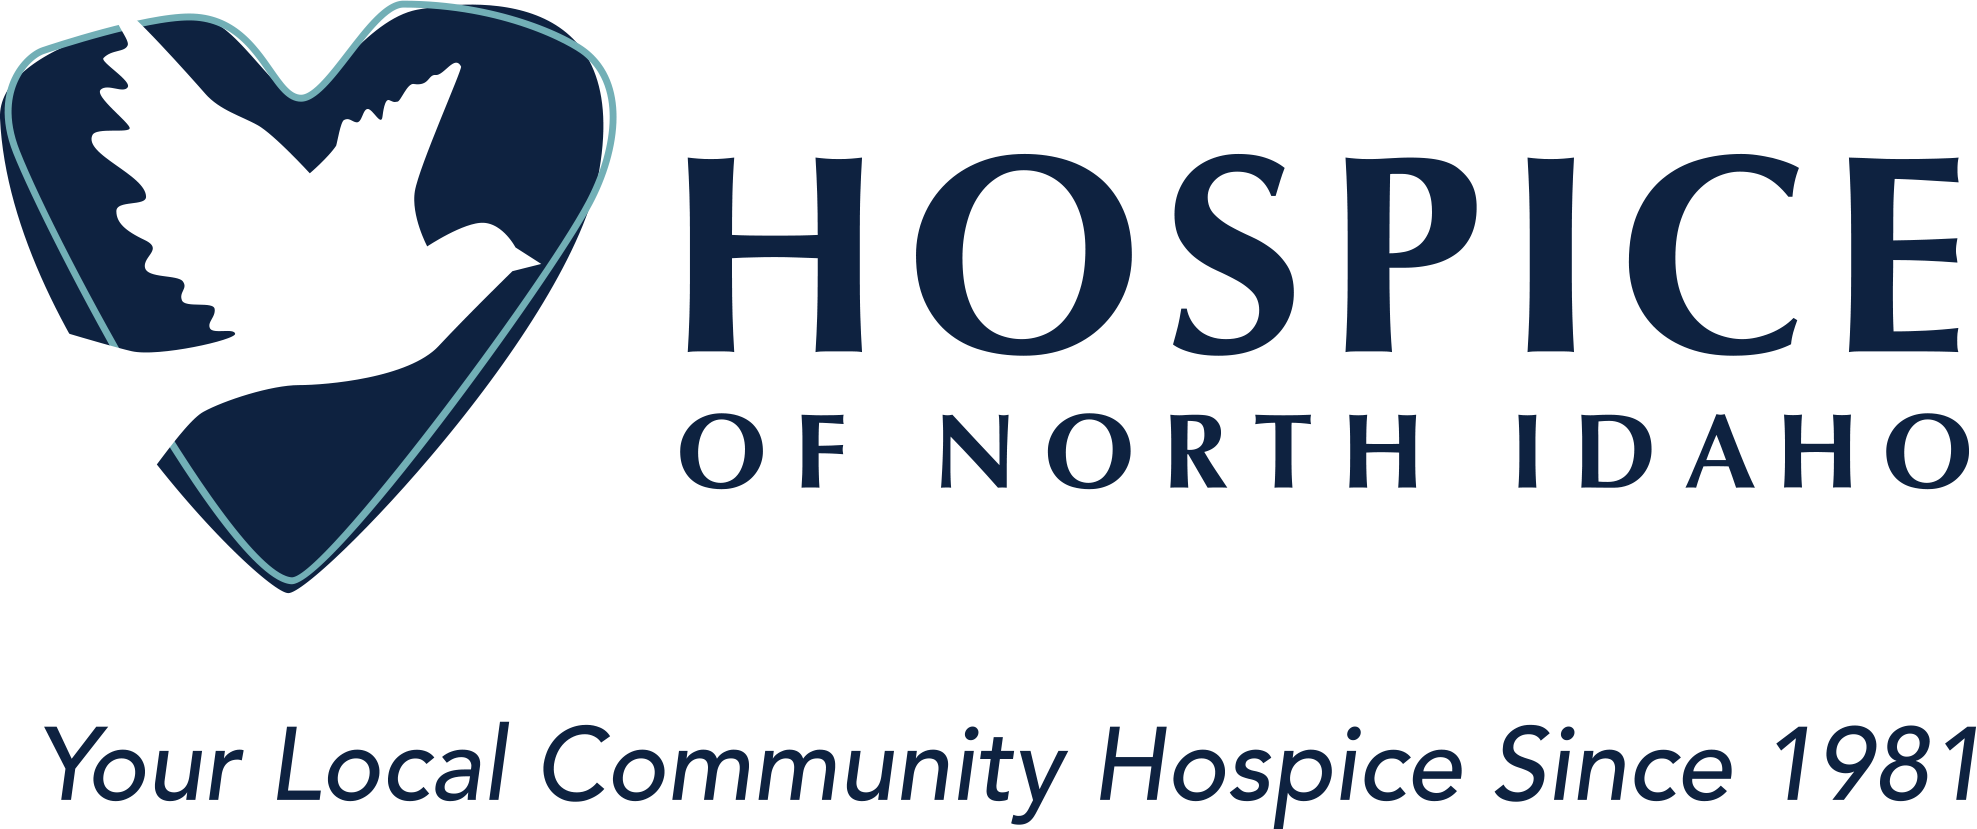 Hospice of North Idaho Retina Logo